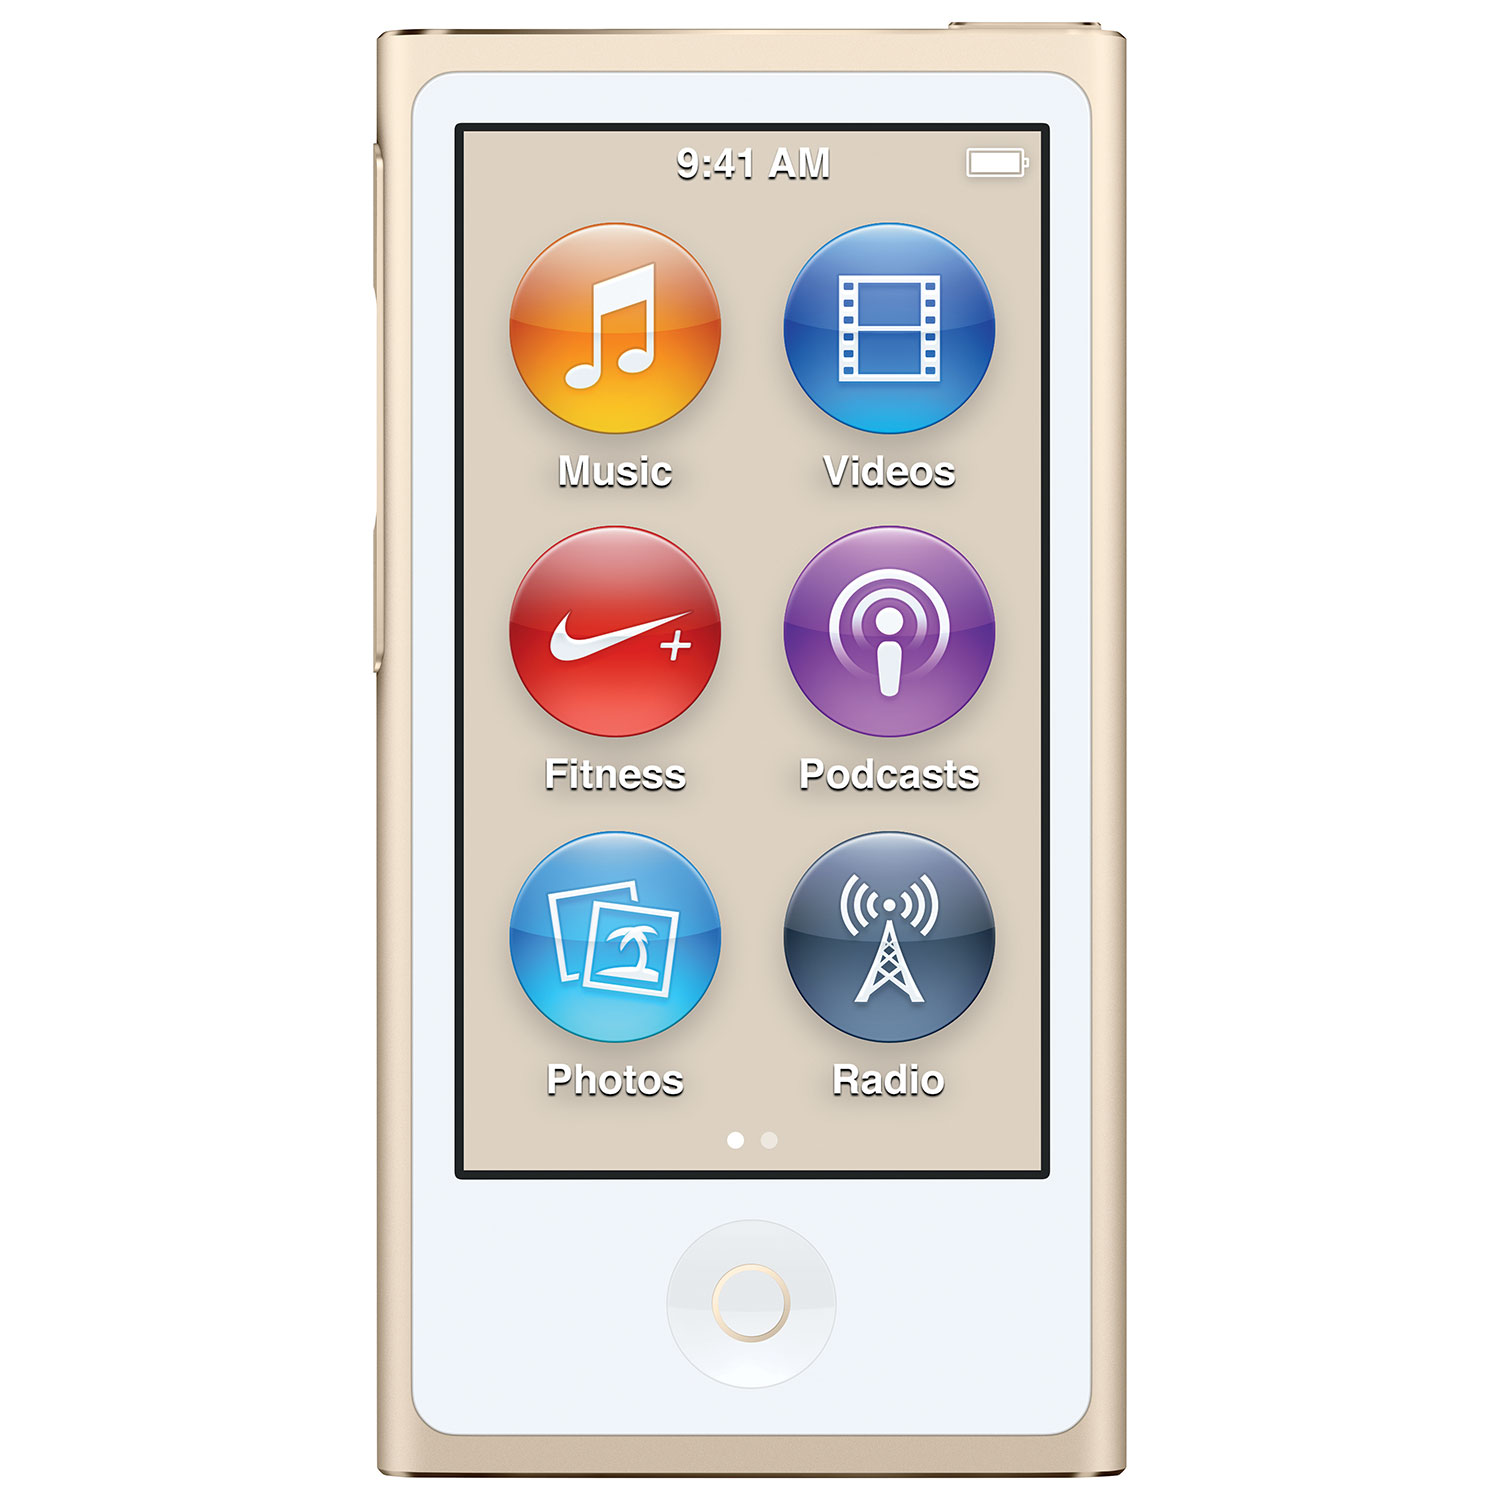 Apple iPod nano 7th Generation 16GB - Gold : Apple iPod - Best Buy Canada